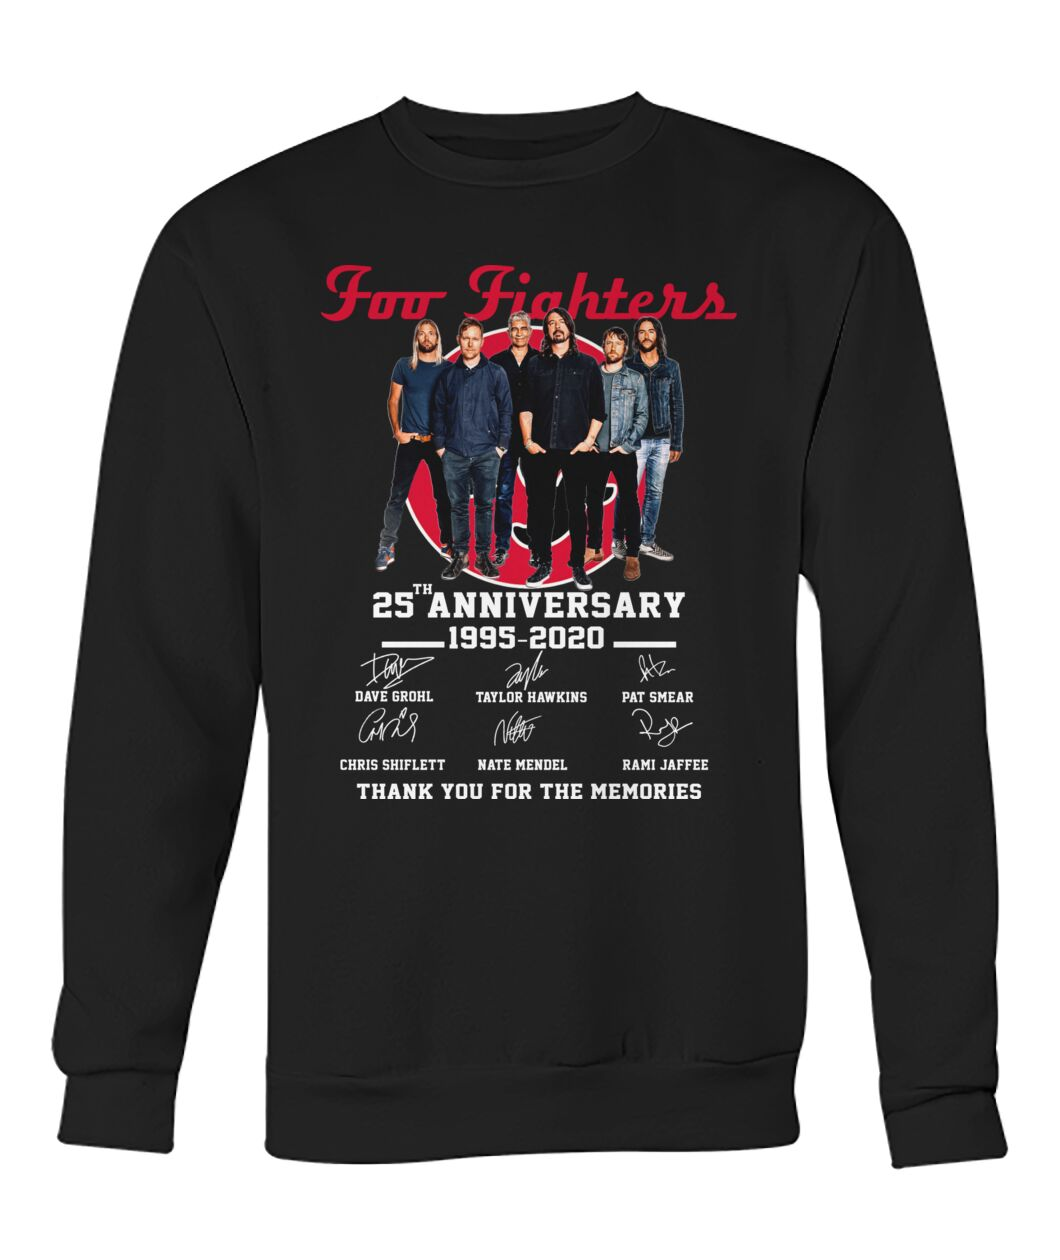 Foo fighters 25th anniversary thank you for the memories